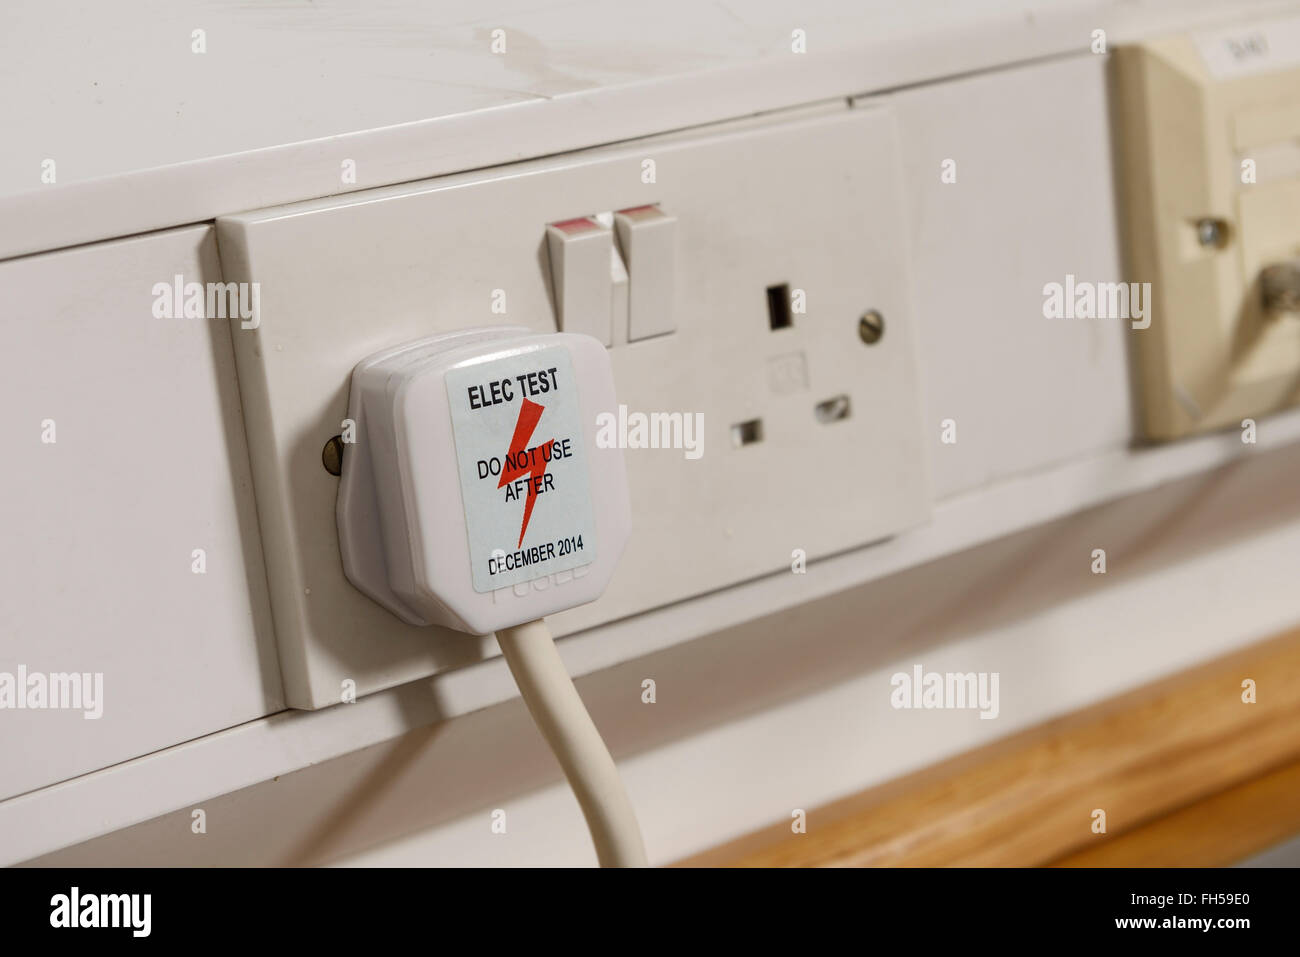 Electrical test sticker on a UK plug and socket - Stock Image